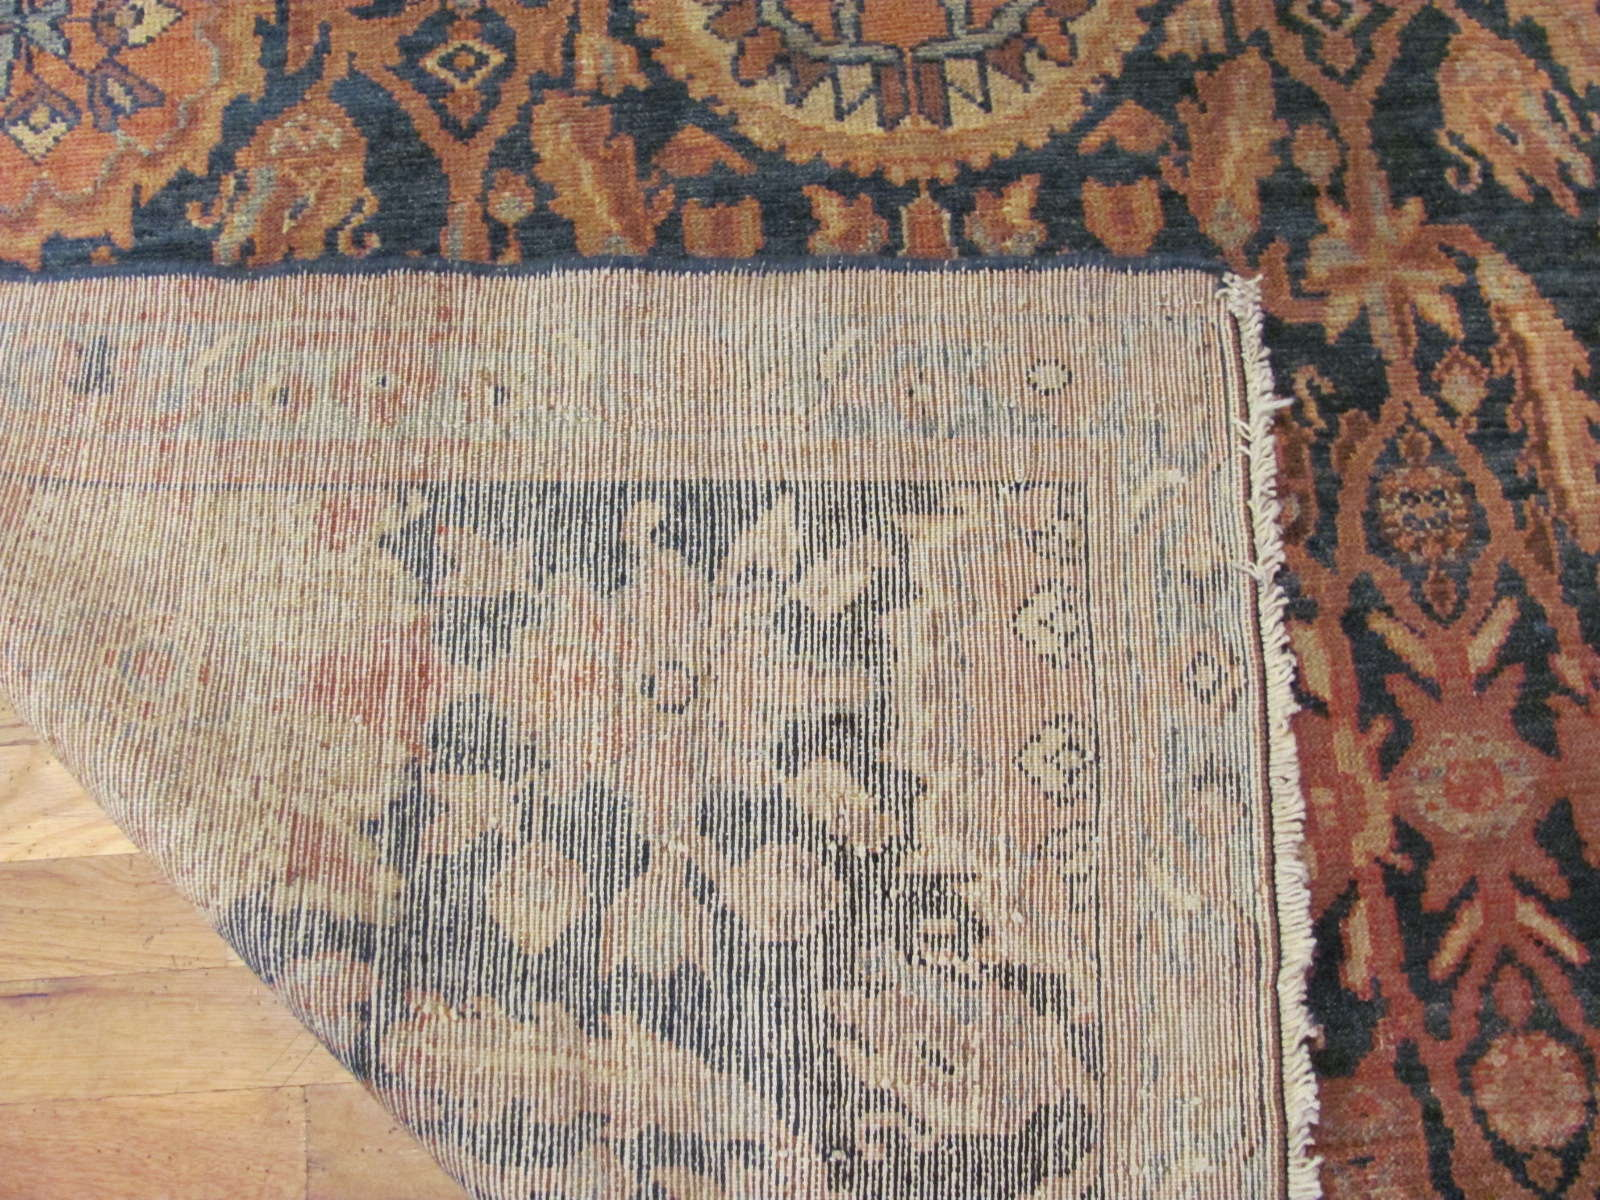 24539 antique persian malayer rug 4,9 x 7 -2